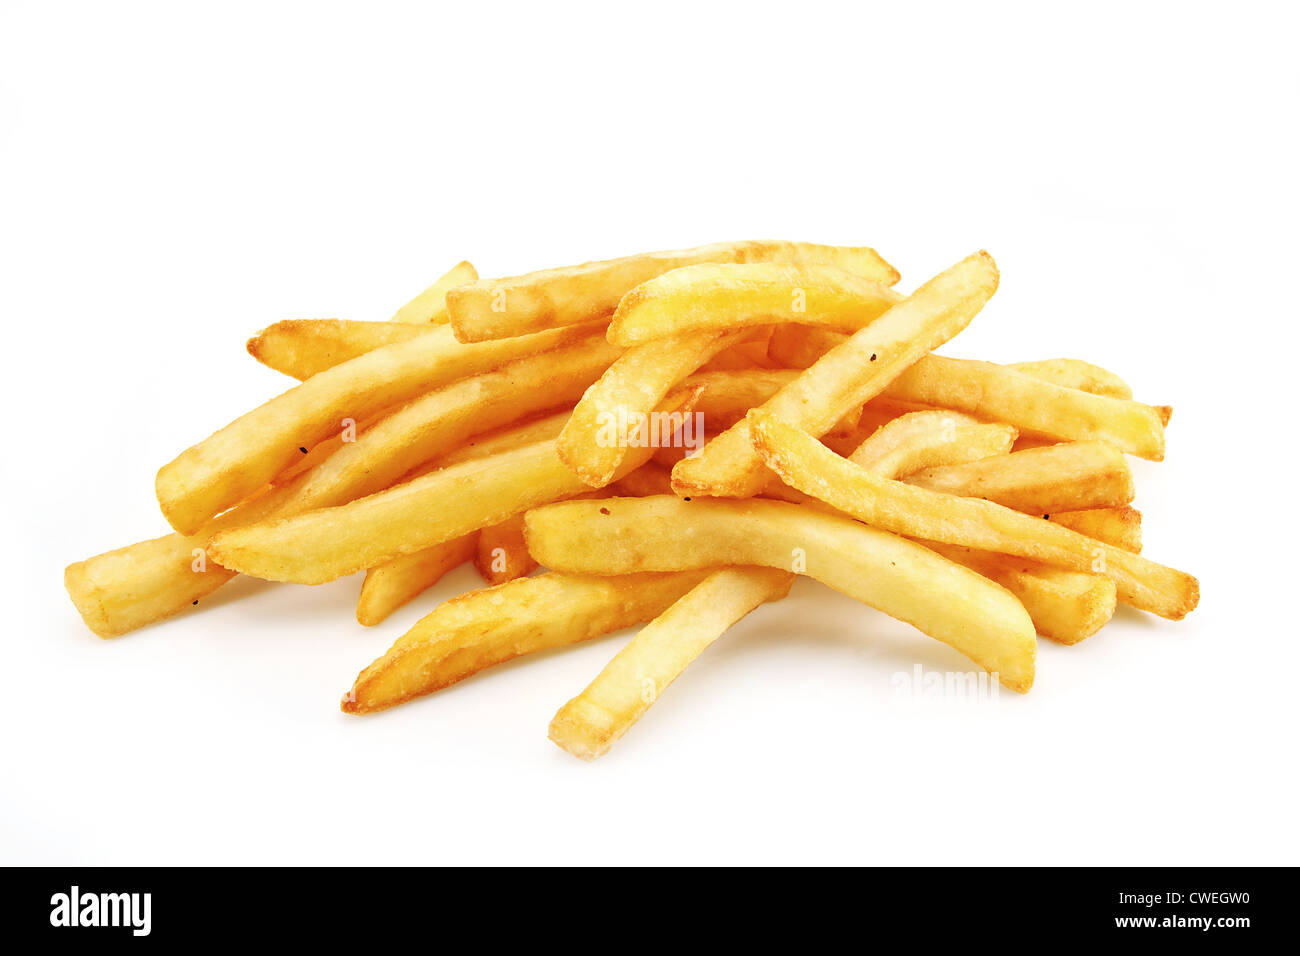 French Fries or Chips originally called pommes frites and more recently named freedom fries in america - Stock Image